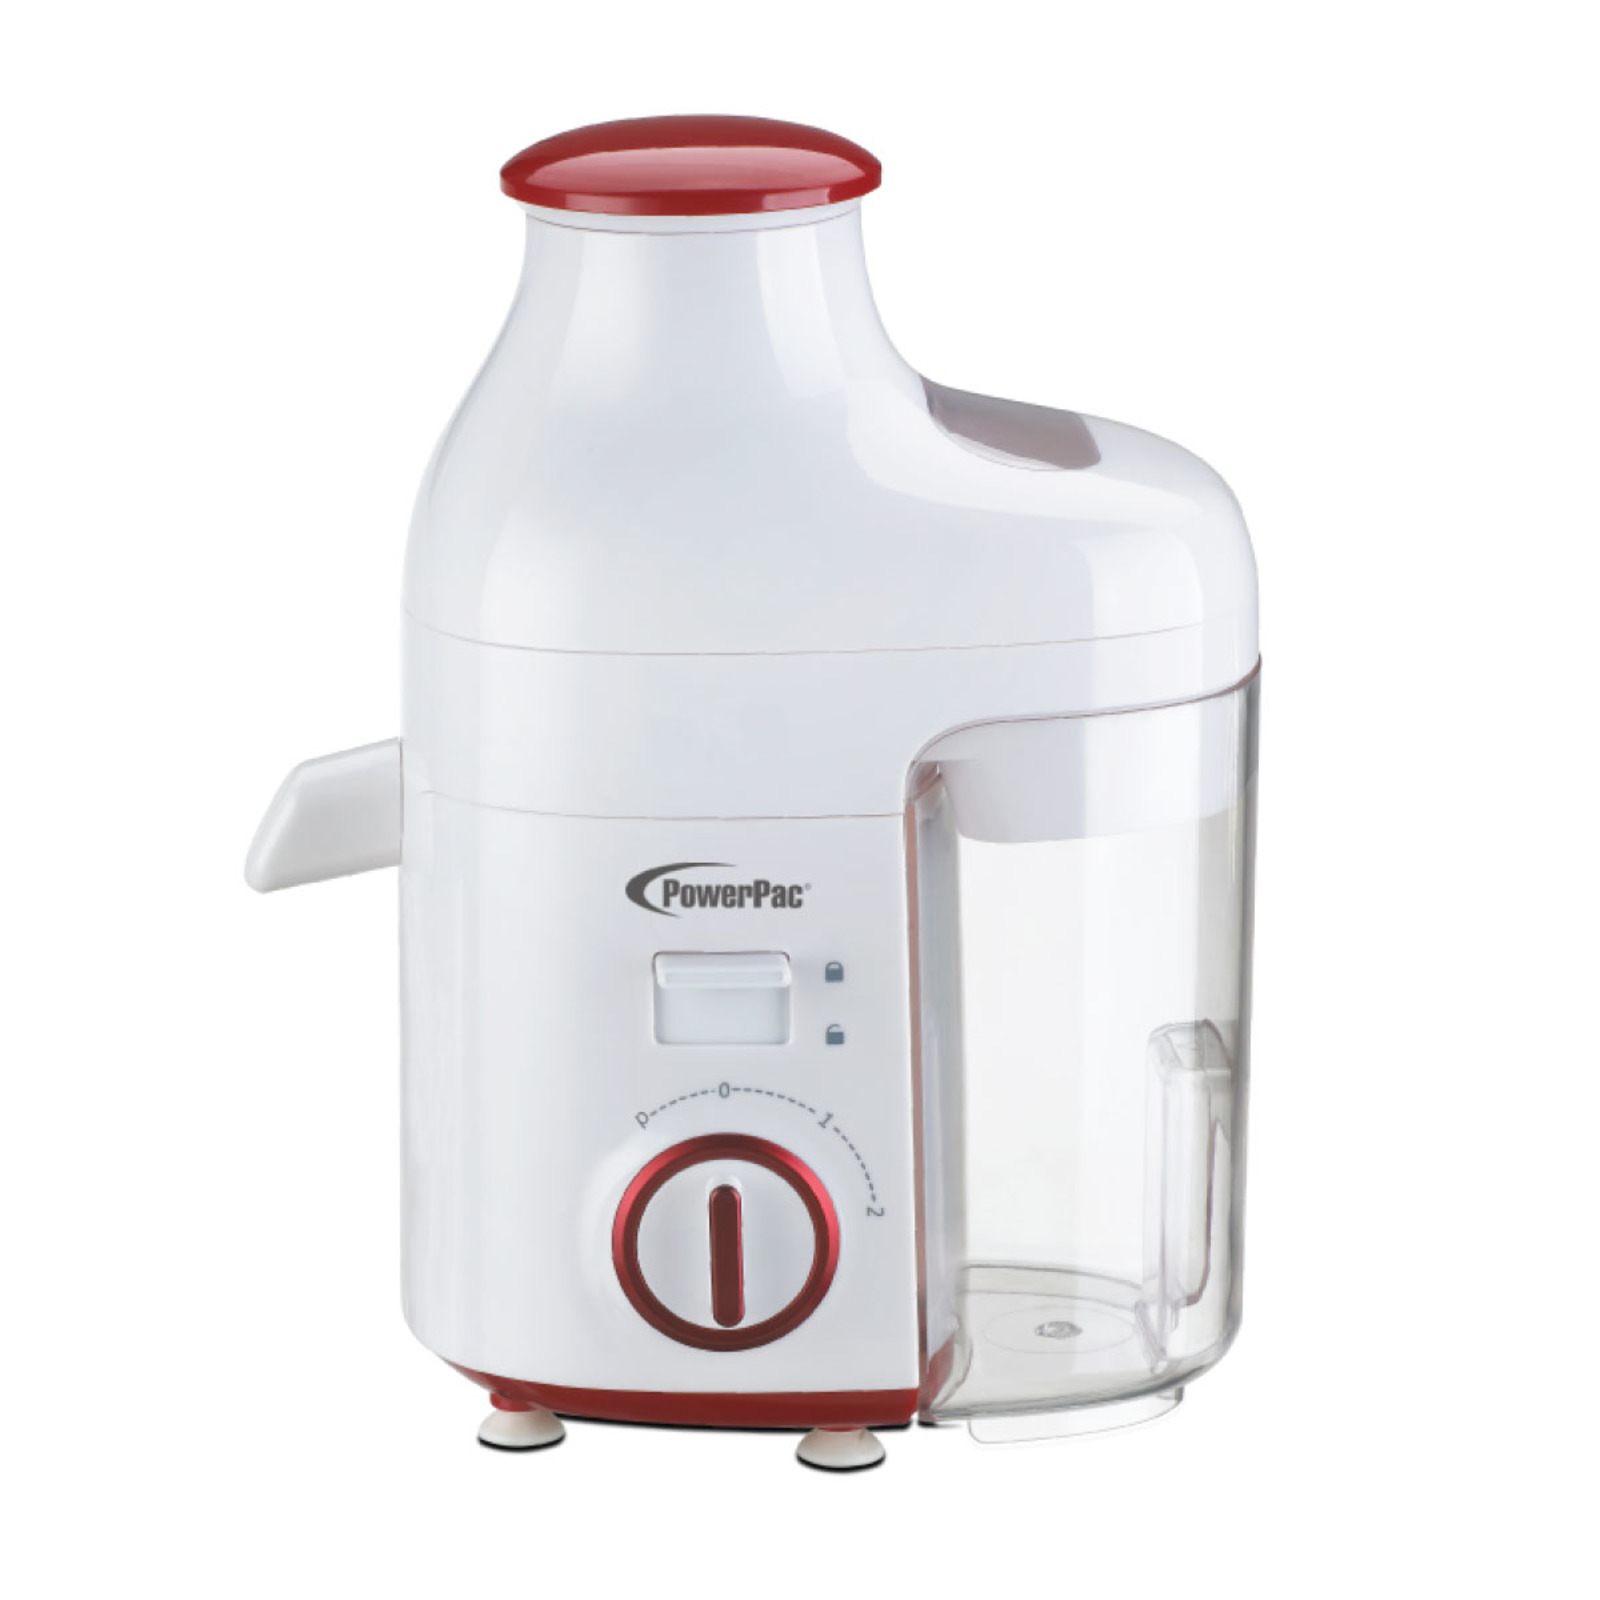 PowerPac Juice Extractor With 2 Speed Selector & Safety Lock PP3403